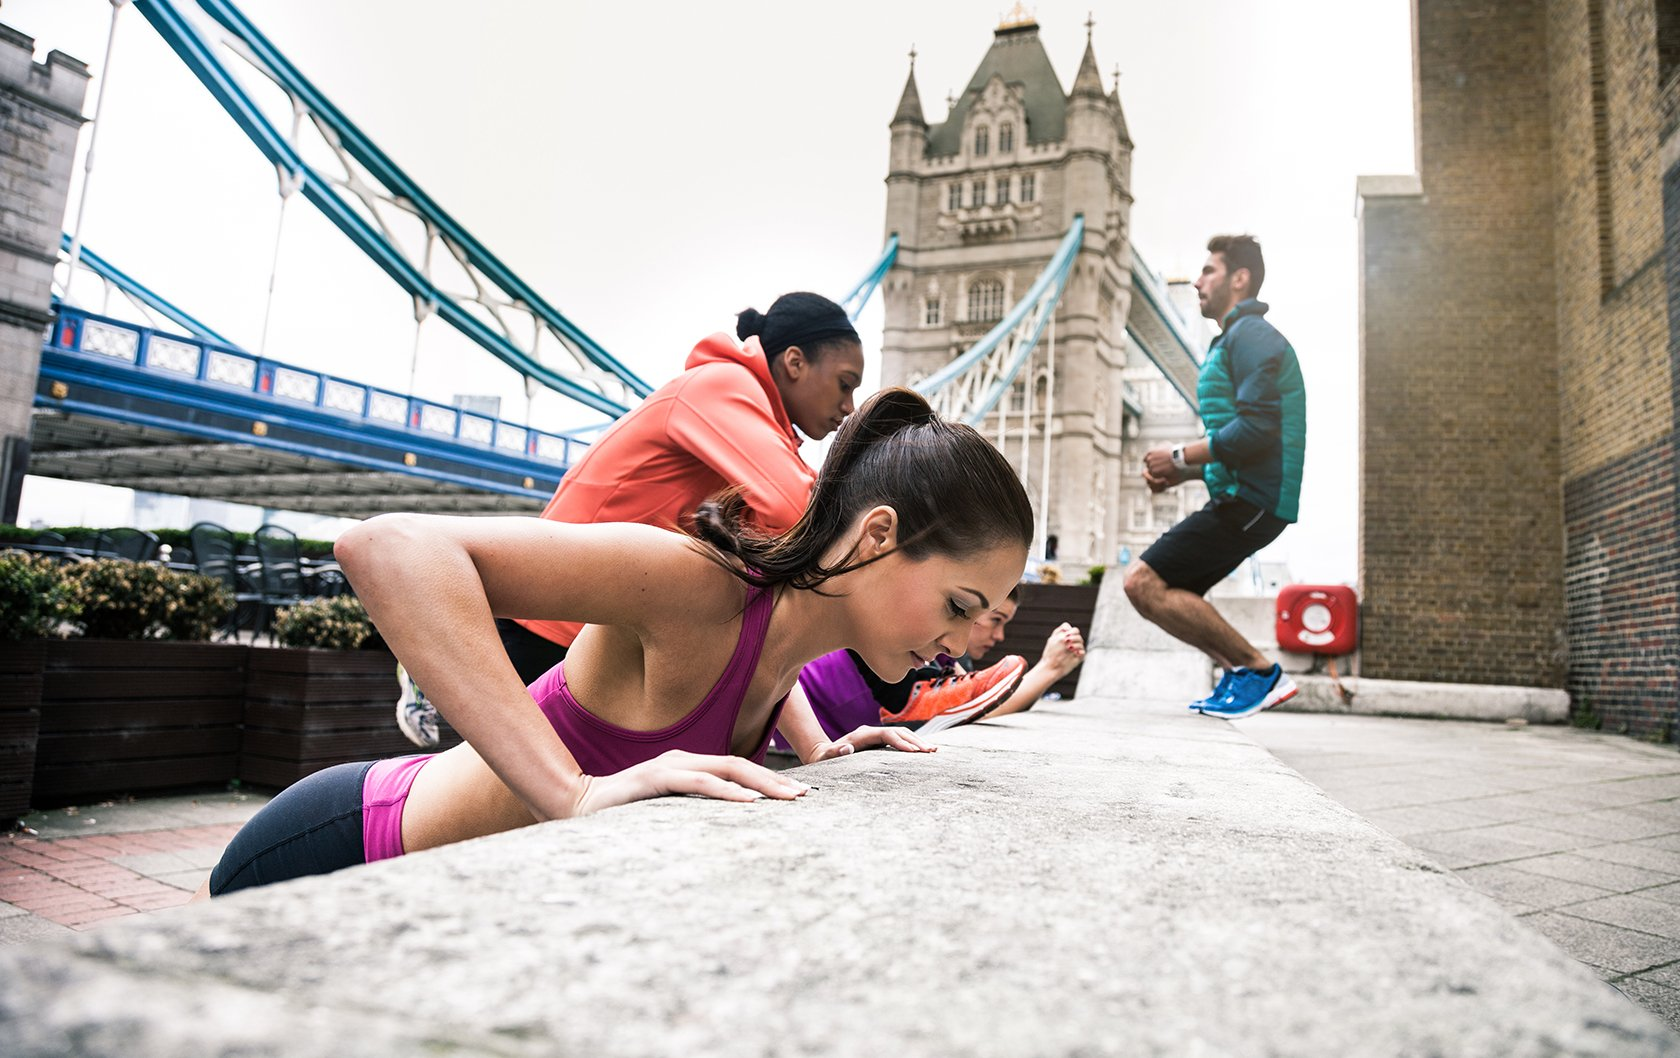 A Guide To Healthy Things To Do In London